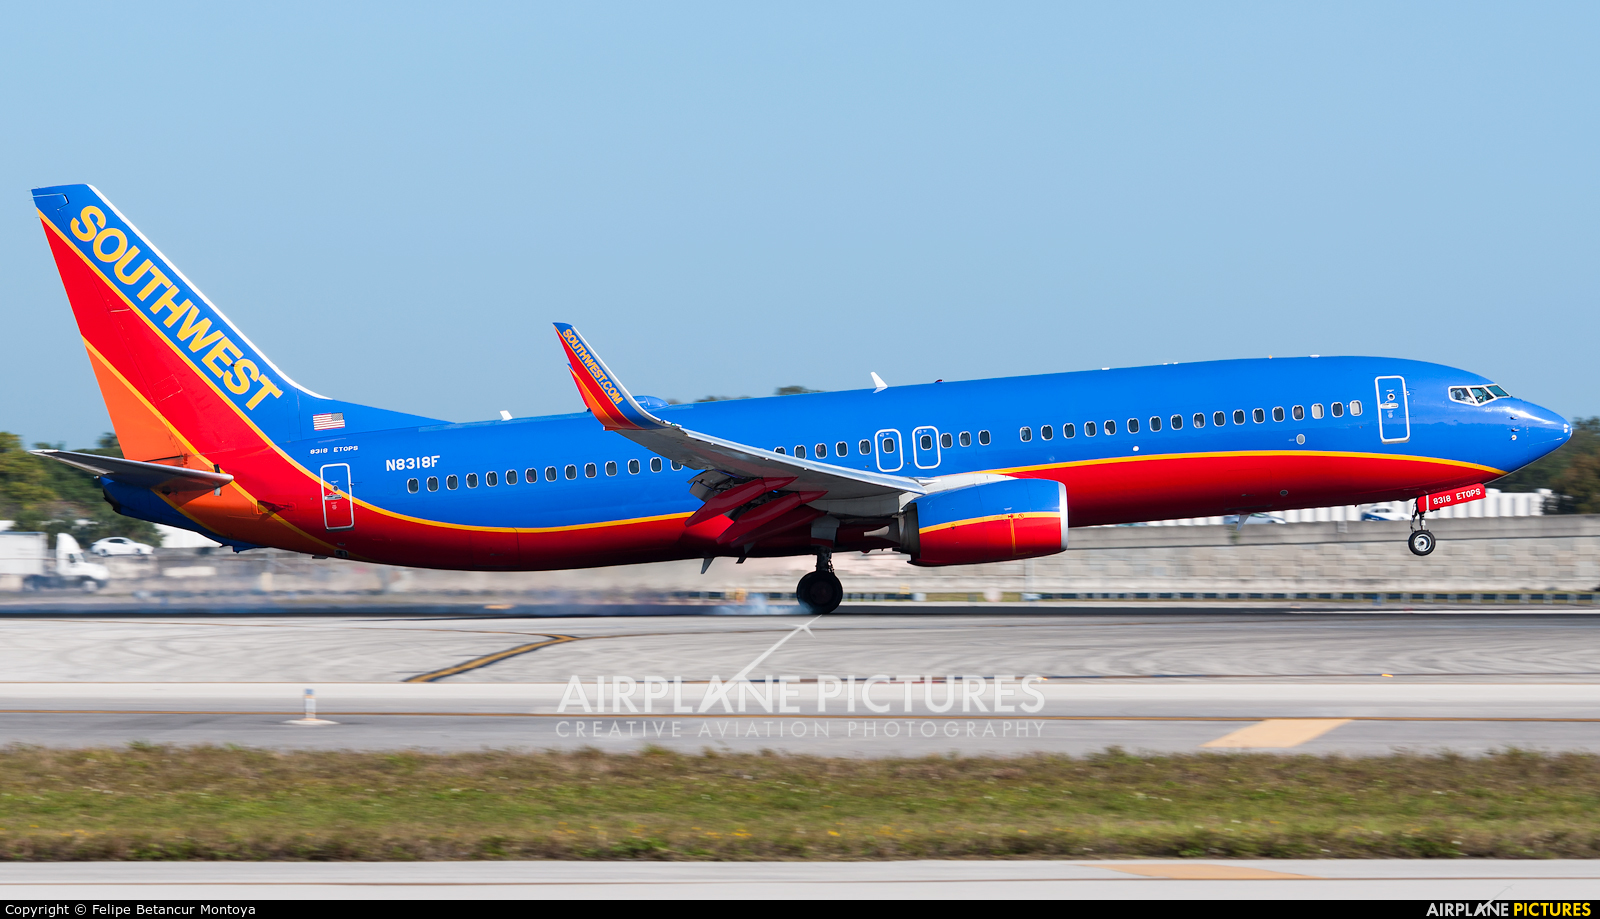 Southwest Airlines N8318F aircraft at Fort Lauderdale - Hollywood Intl